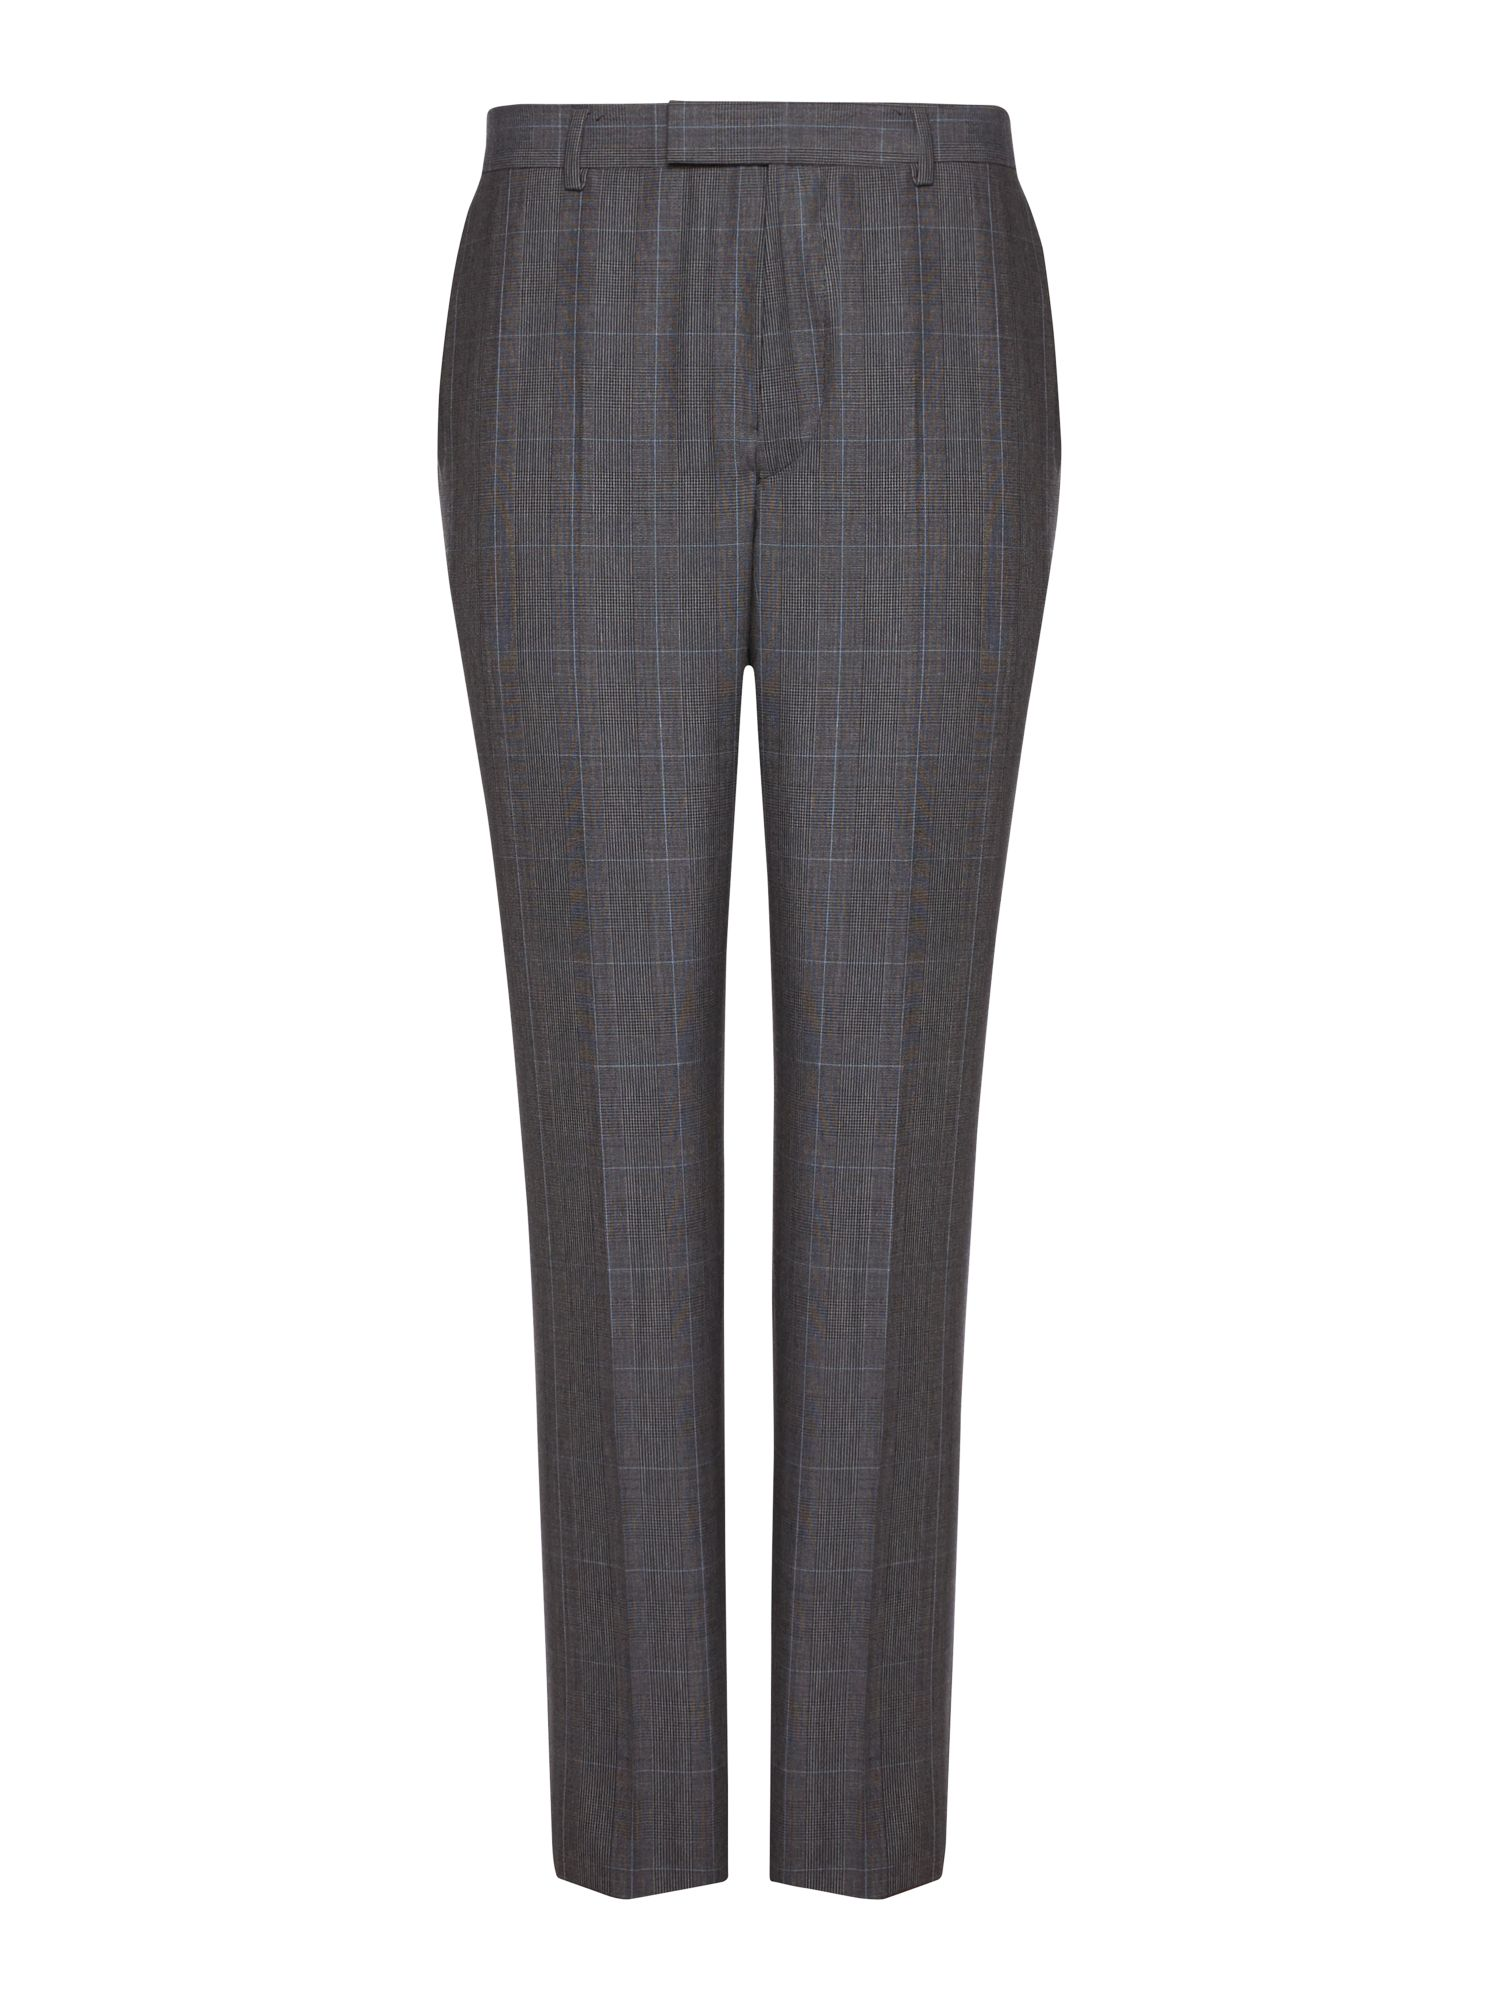 Prince of Wales check formal suit trousers